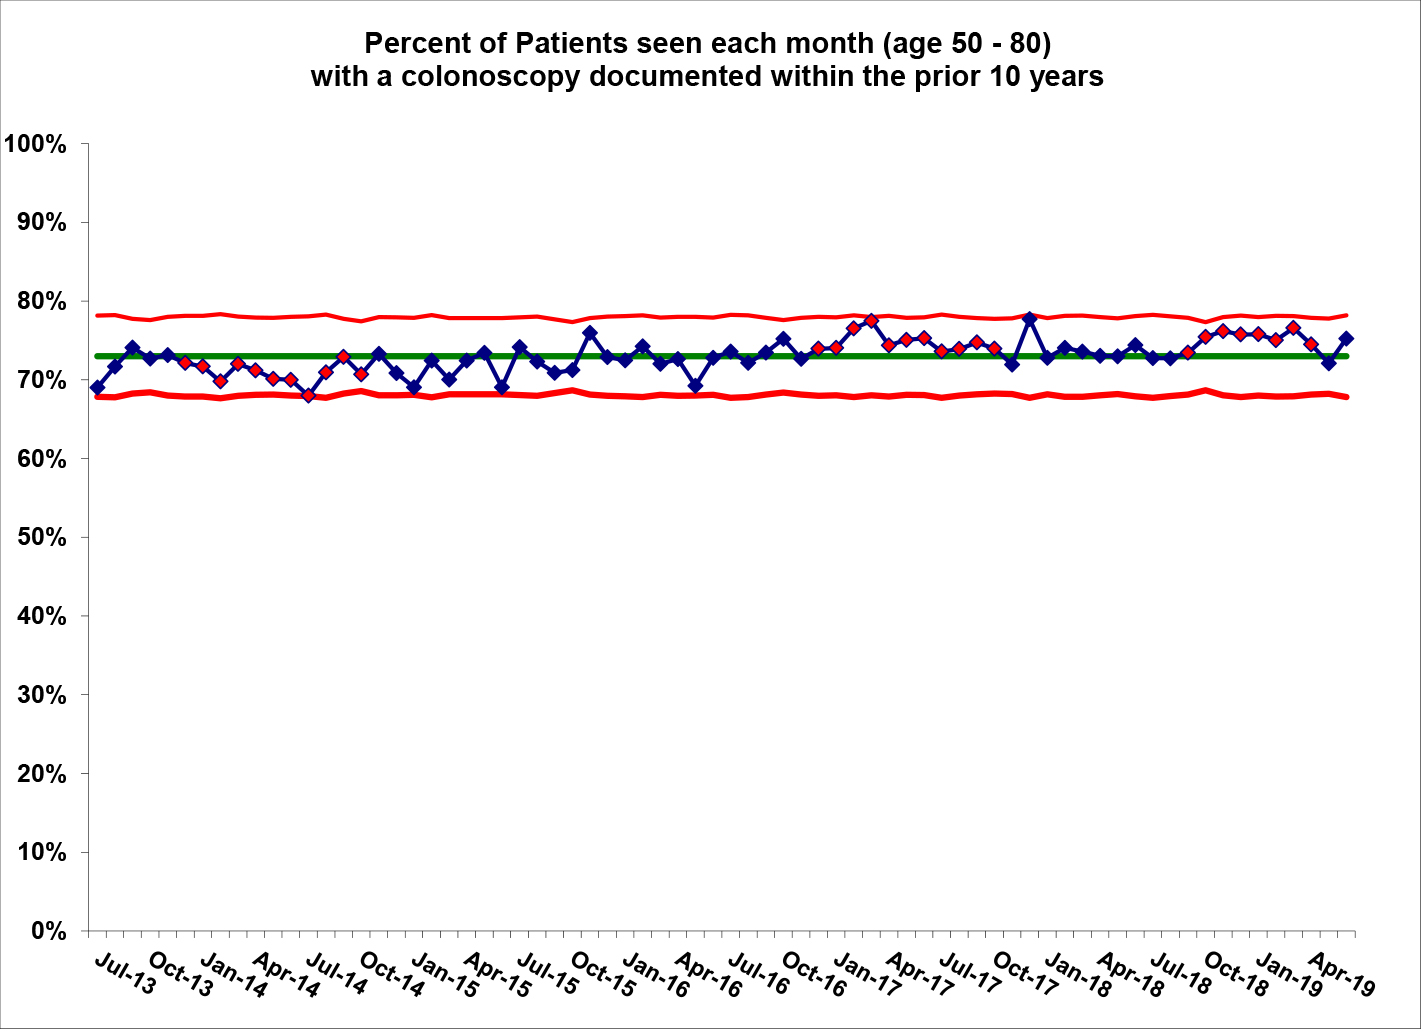 The percent of our patients who are seen each month and who are current in colonoscopy screening. The red dots beginning in May, 2012, indicate consistent significant improvement in colonoscopy screening among our patients.